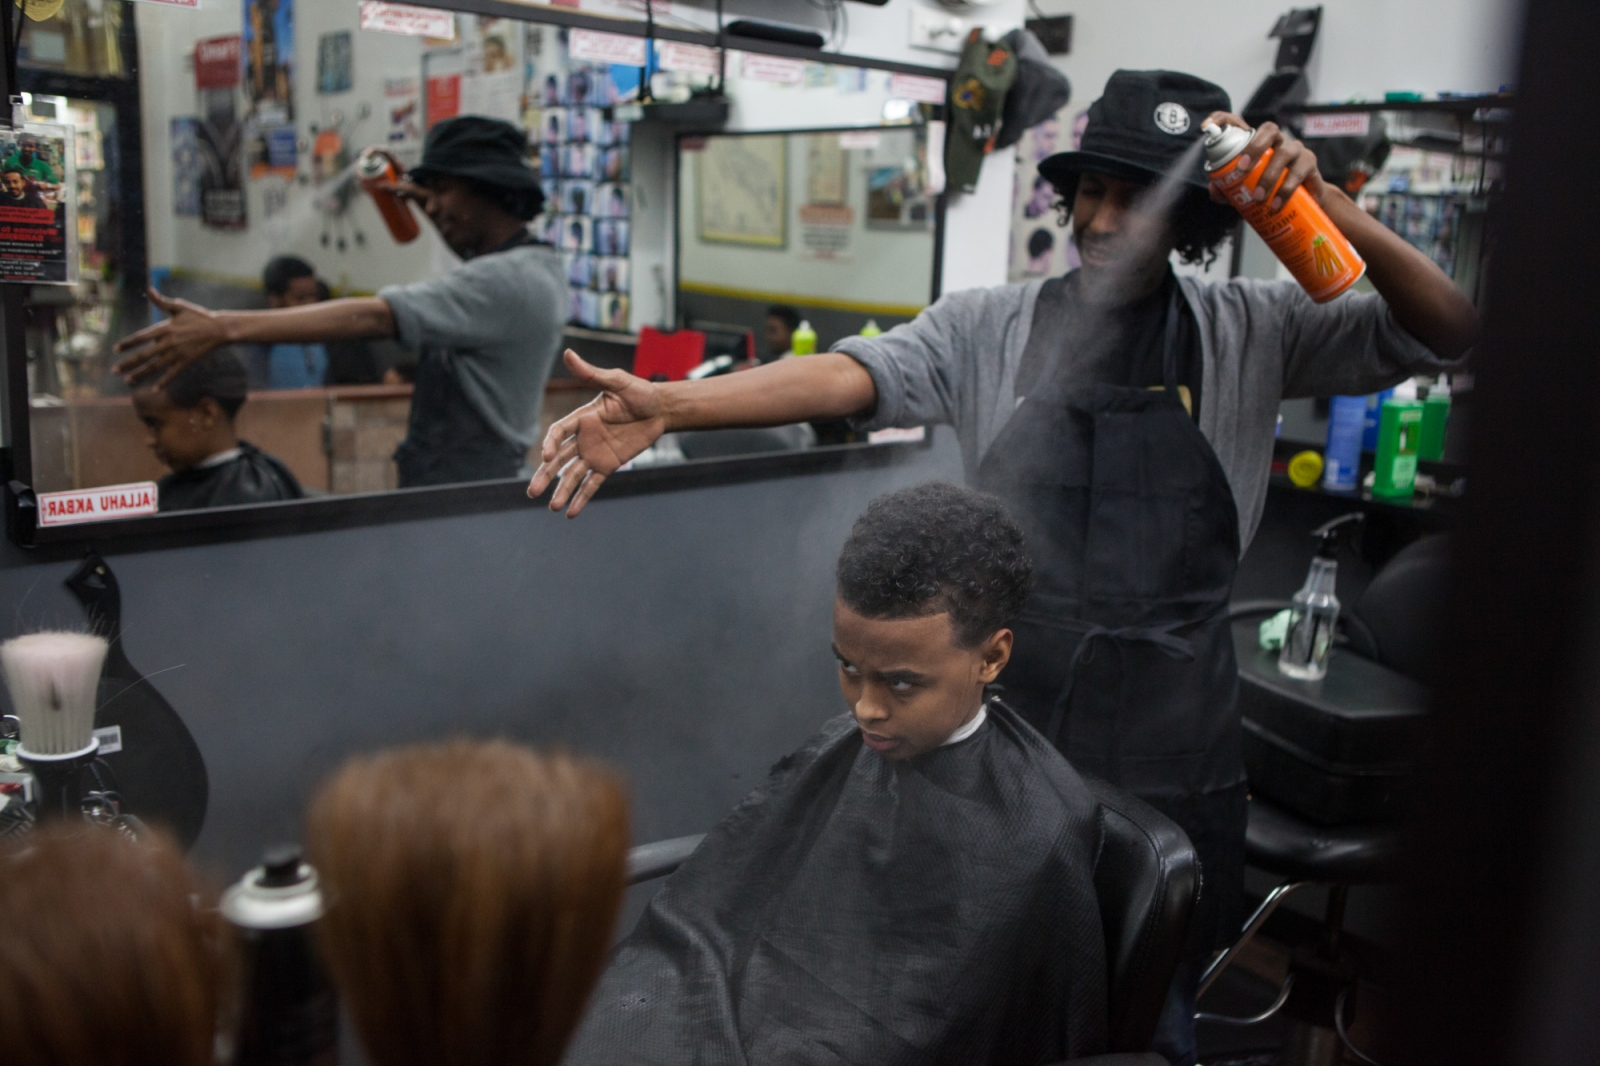 Jamaal Farah cuts the hair of a Somali boy at his barber shop in Karamel Mall. Mr. Farah is also a popular comedian and social media star among the Somali diaspora.